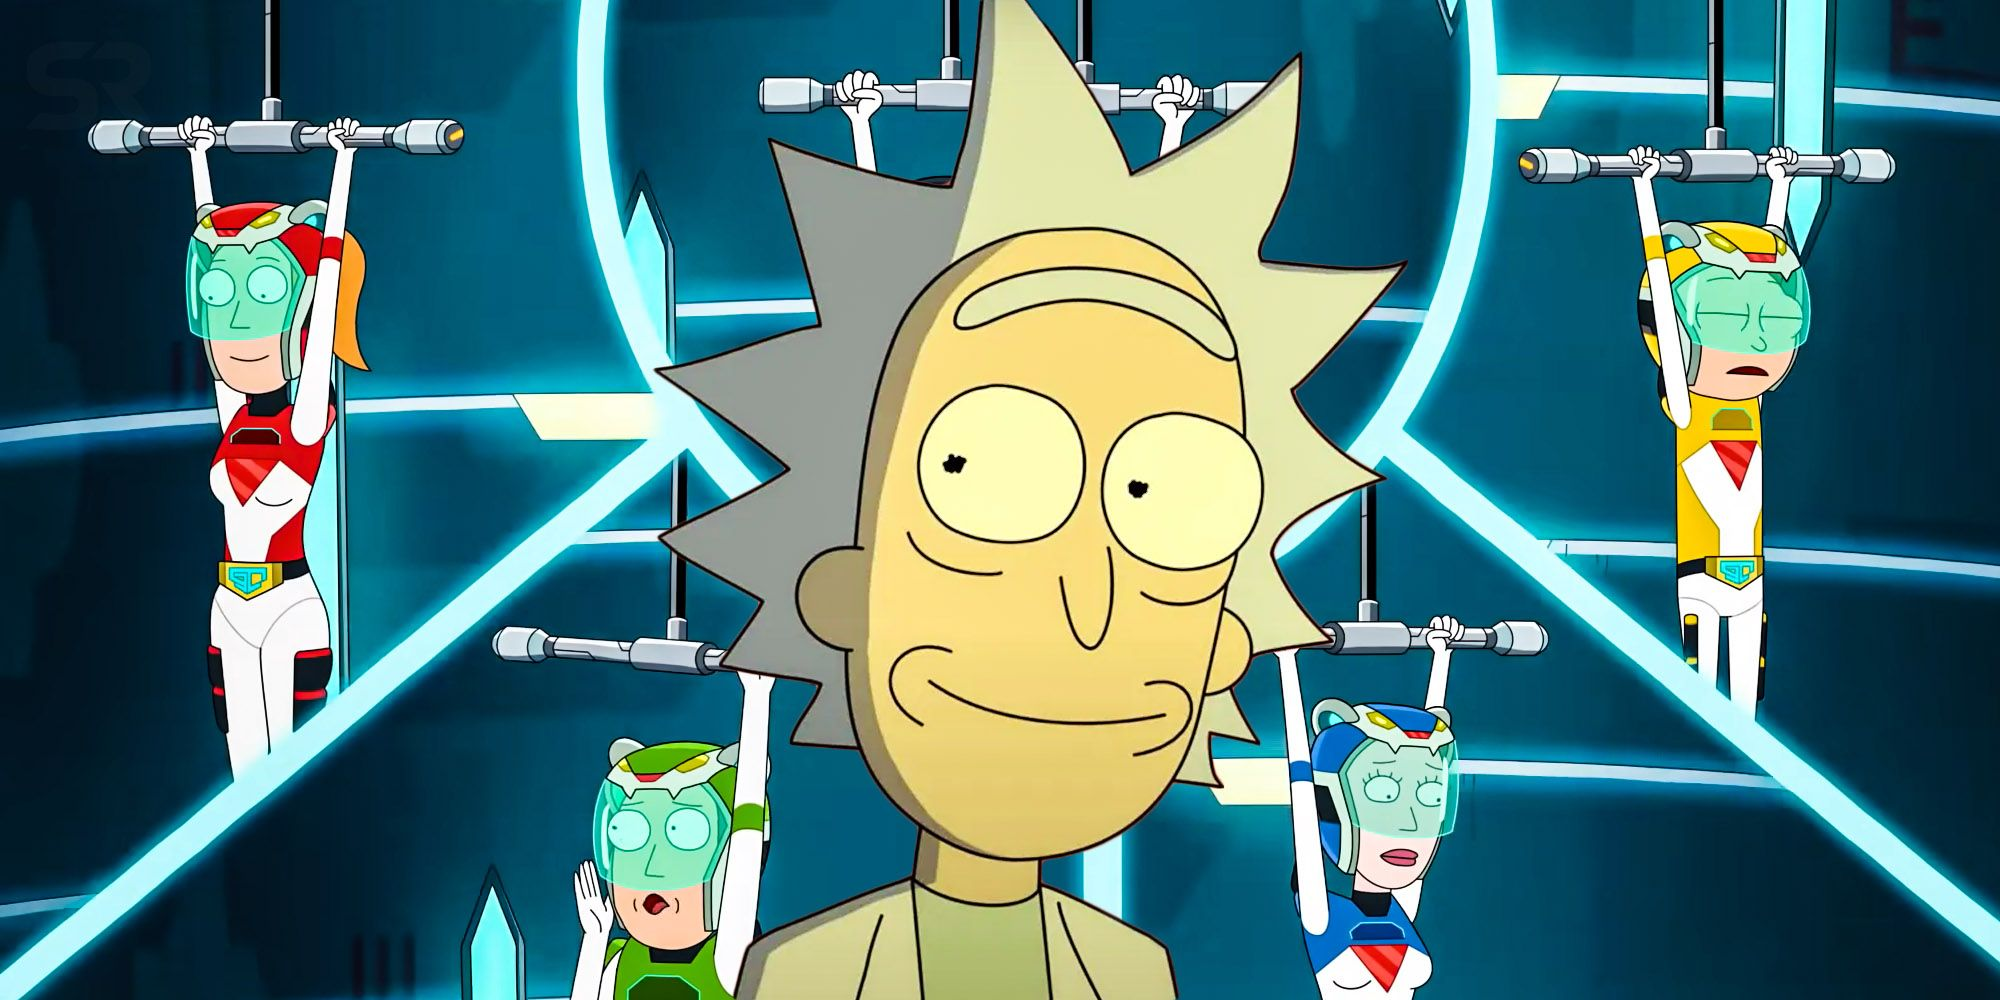 Rick & Morty Season 5 Cast & Character Guide: What The Voice Actors Look Like